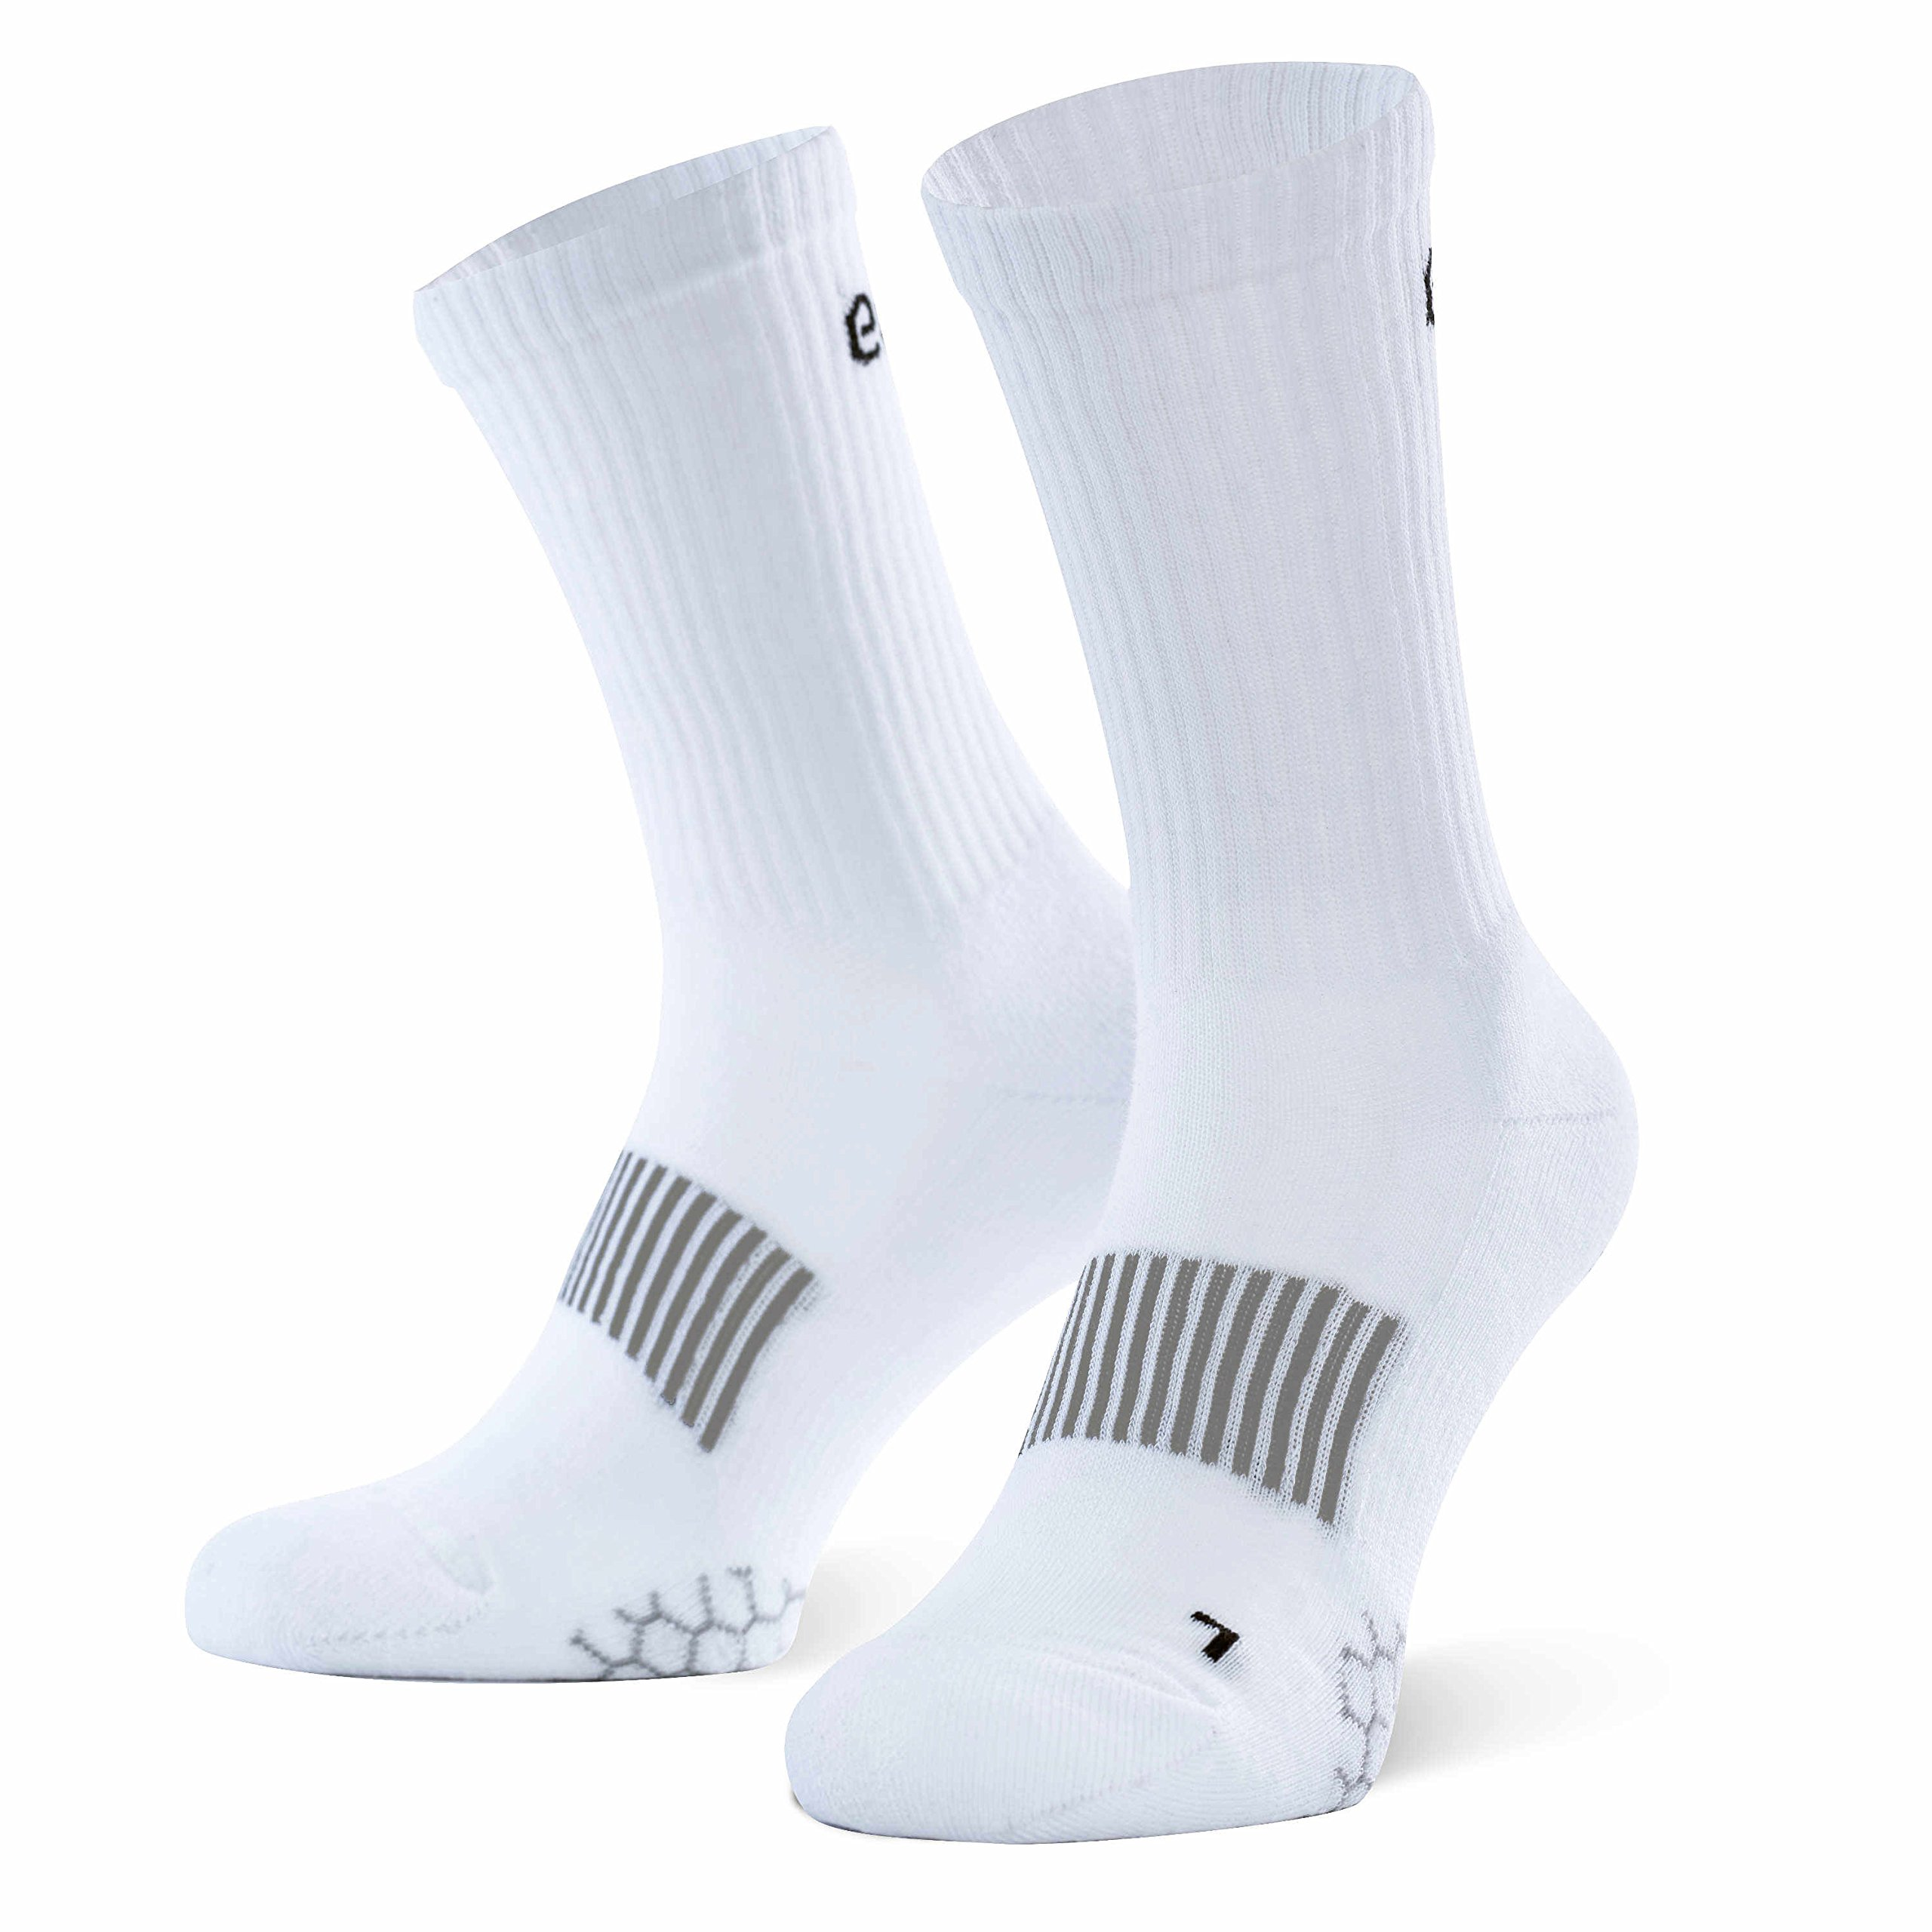 Eono Essentials - Calcetines deportivos (pack de 3), unisex, color: Blanco